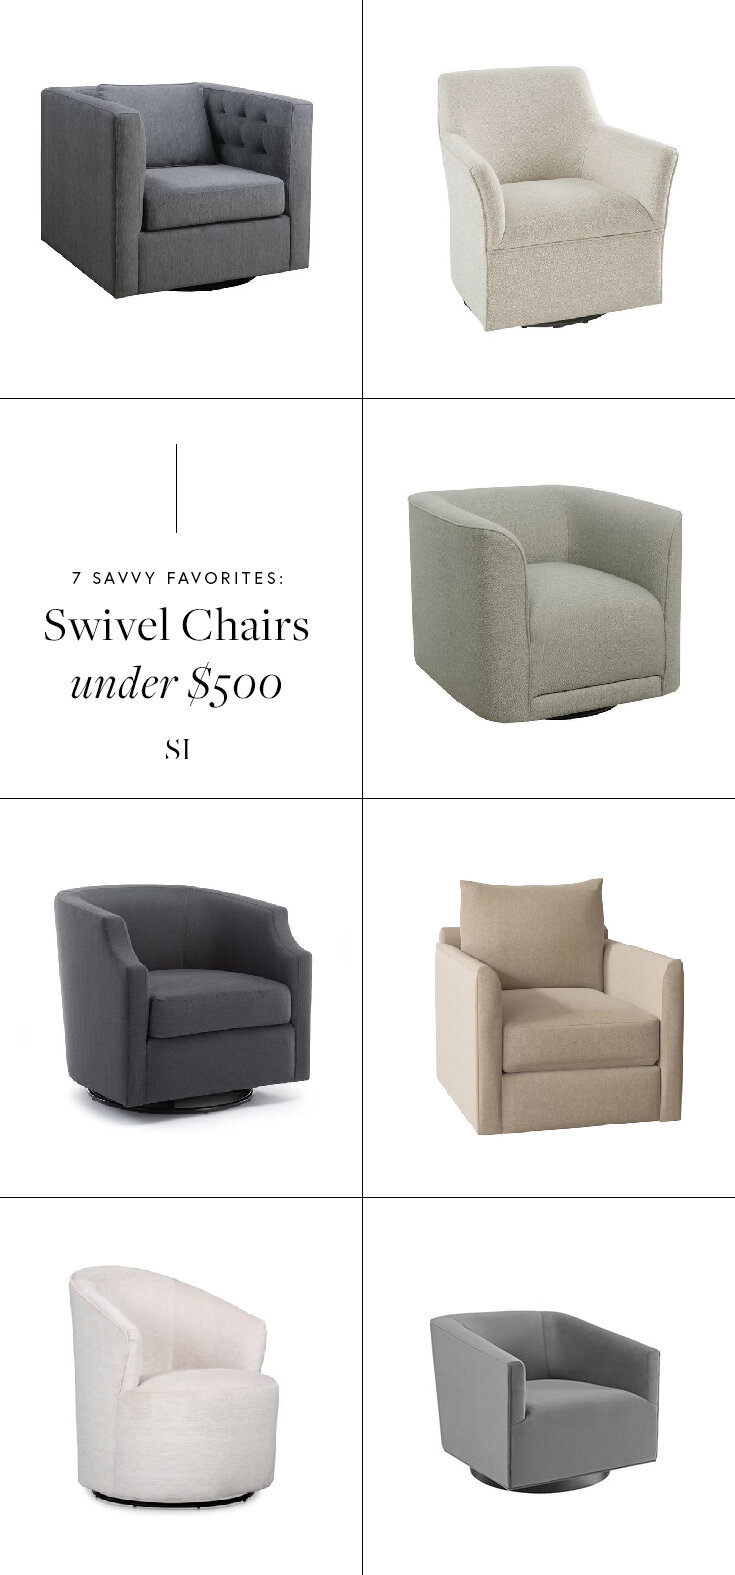 7 Modern Swivel Chairs with Round and Square backs for a contemporary living room by the savvy heart design studio